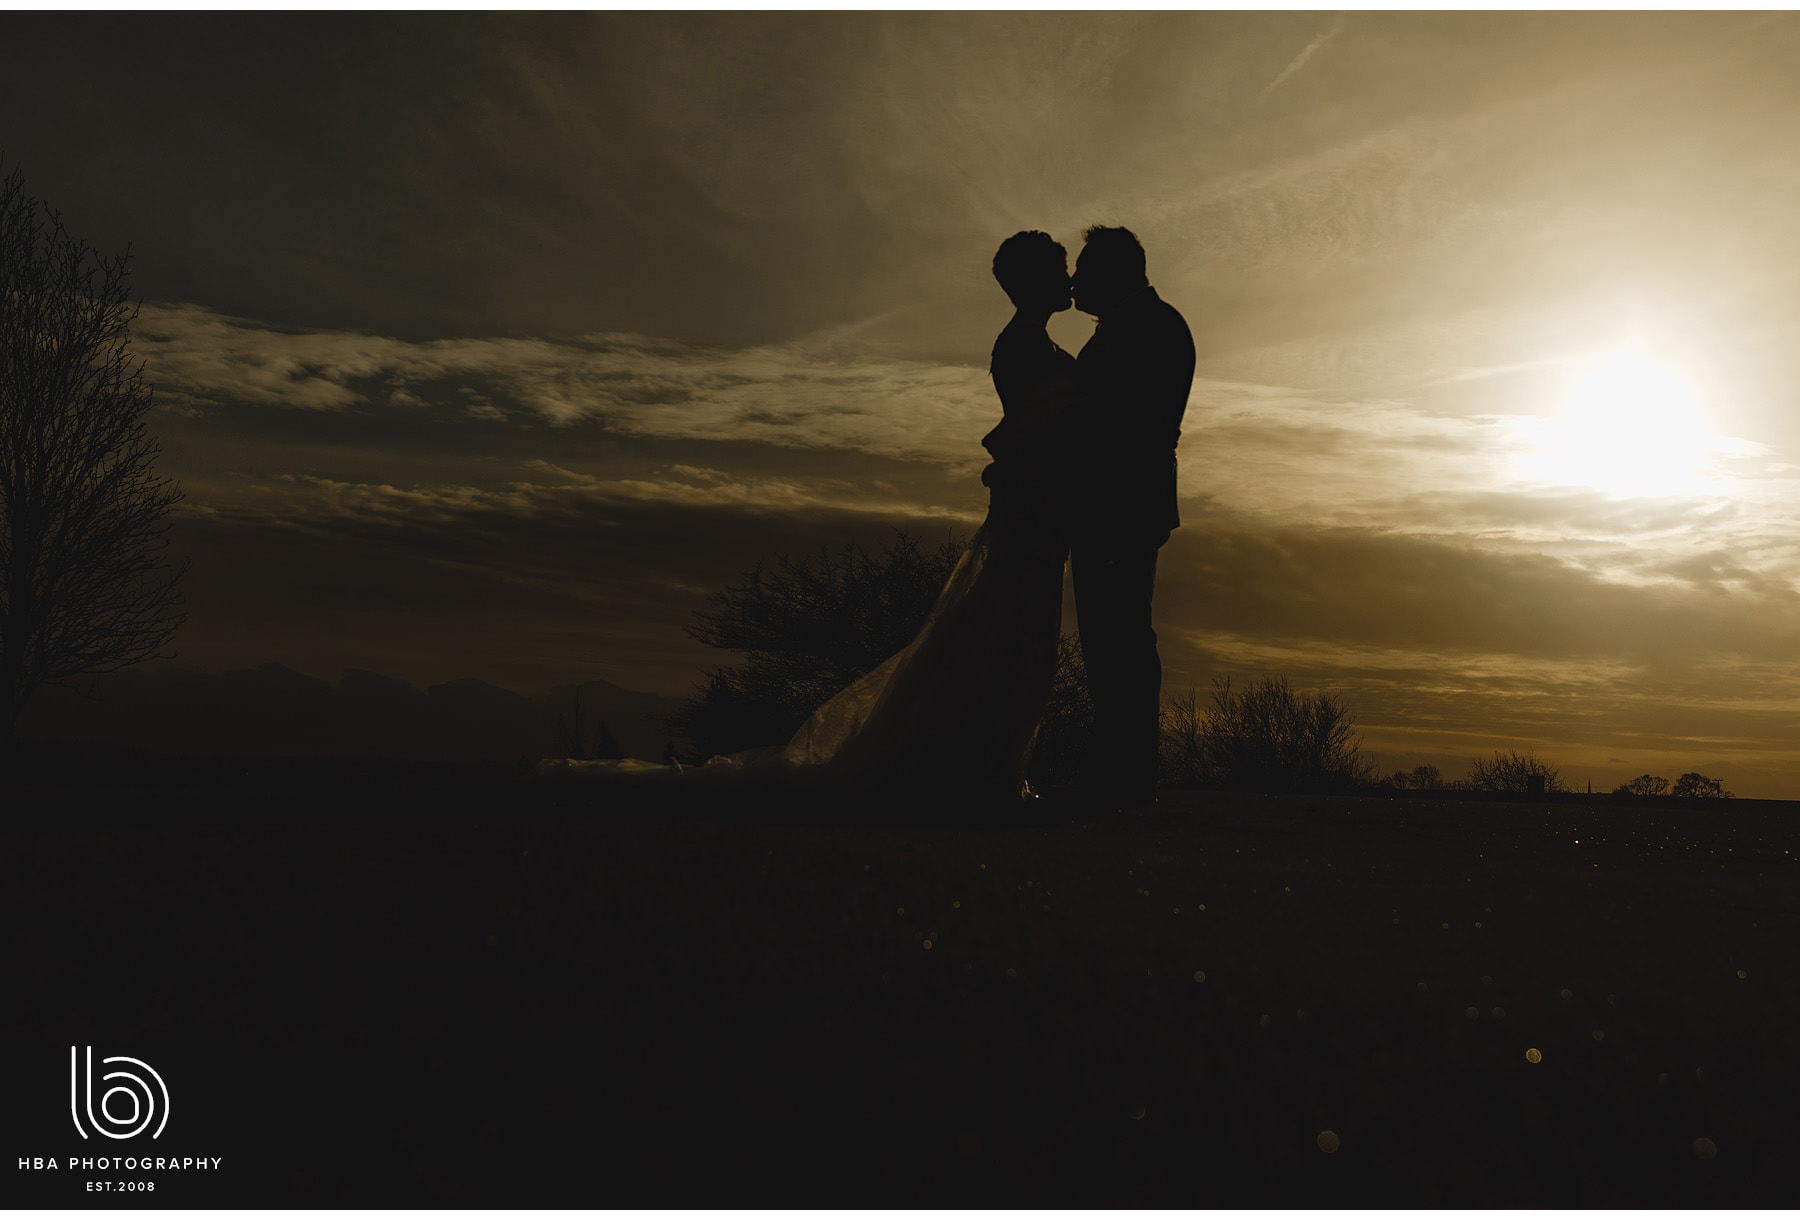 the bride & groom in silhouette against the sunset